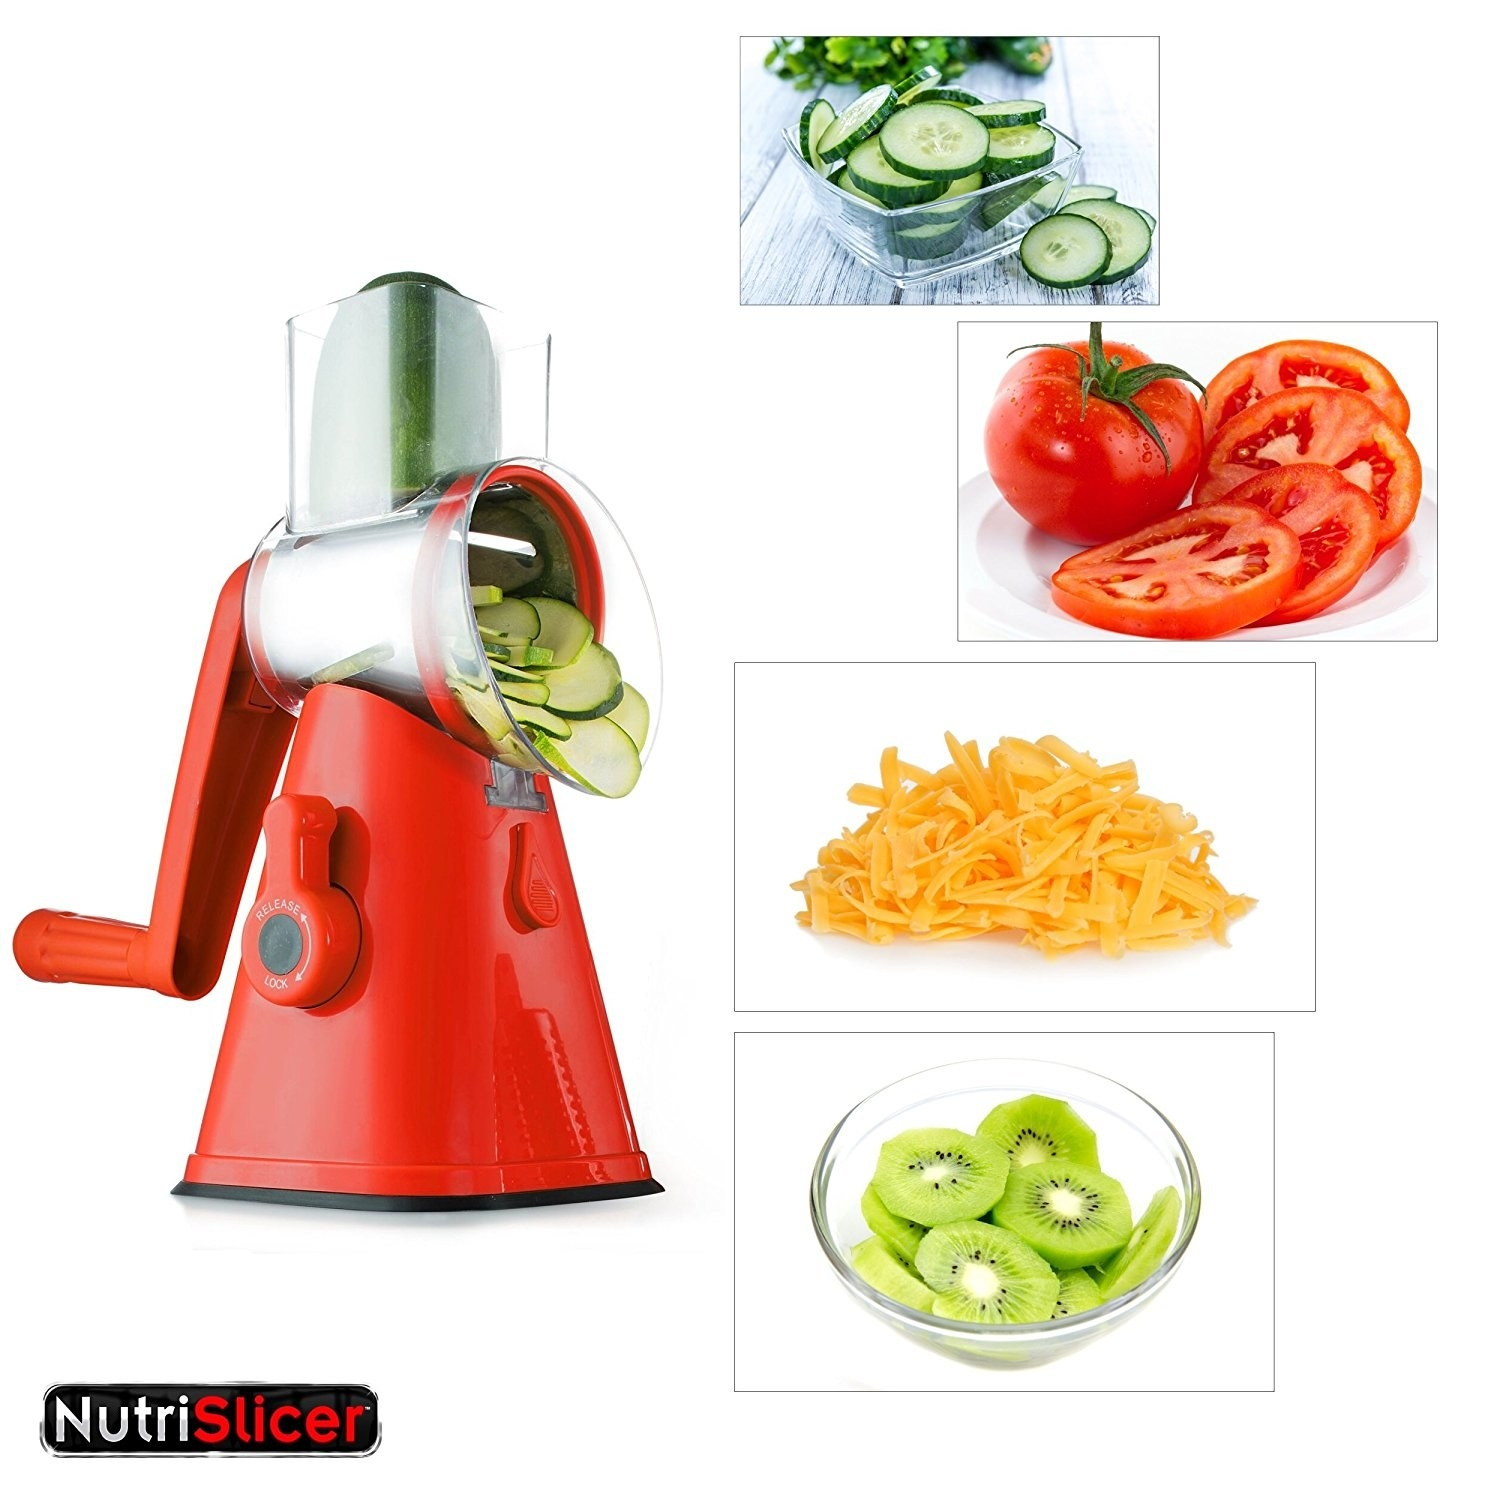 The madolin slicer with handle for slicing